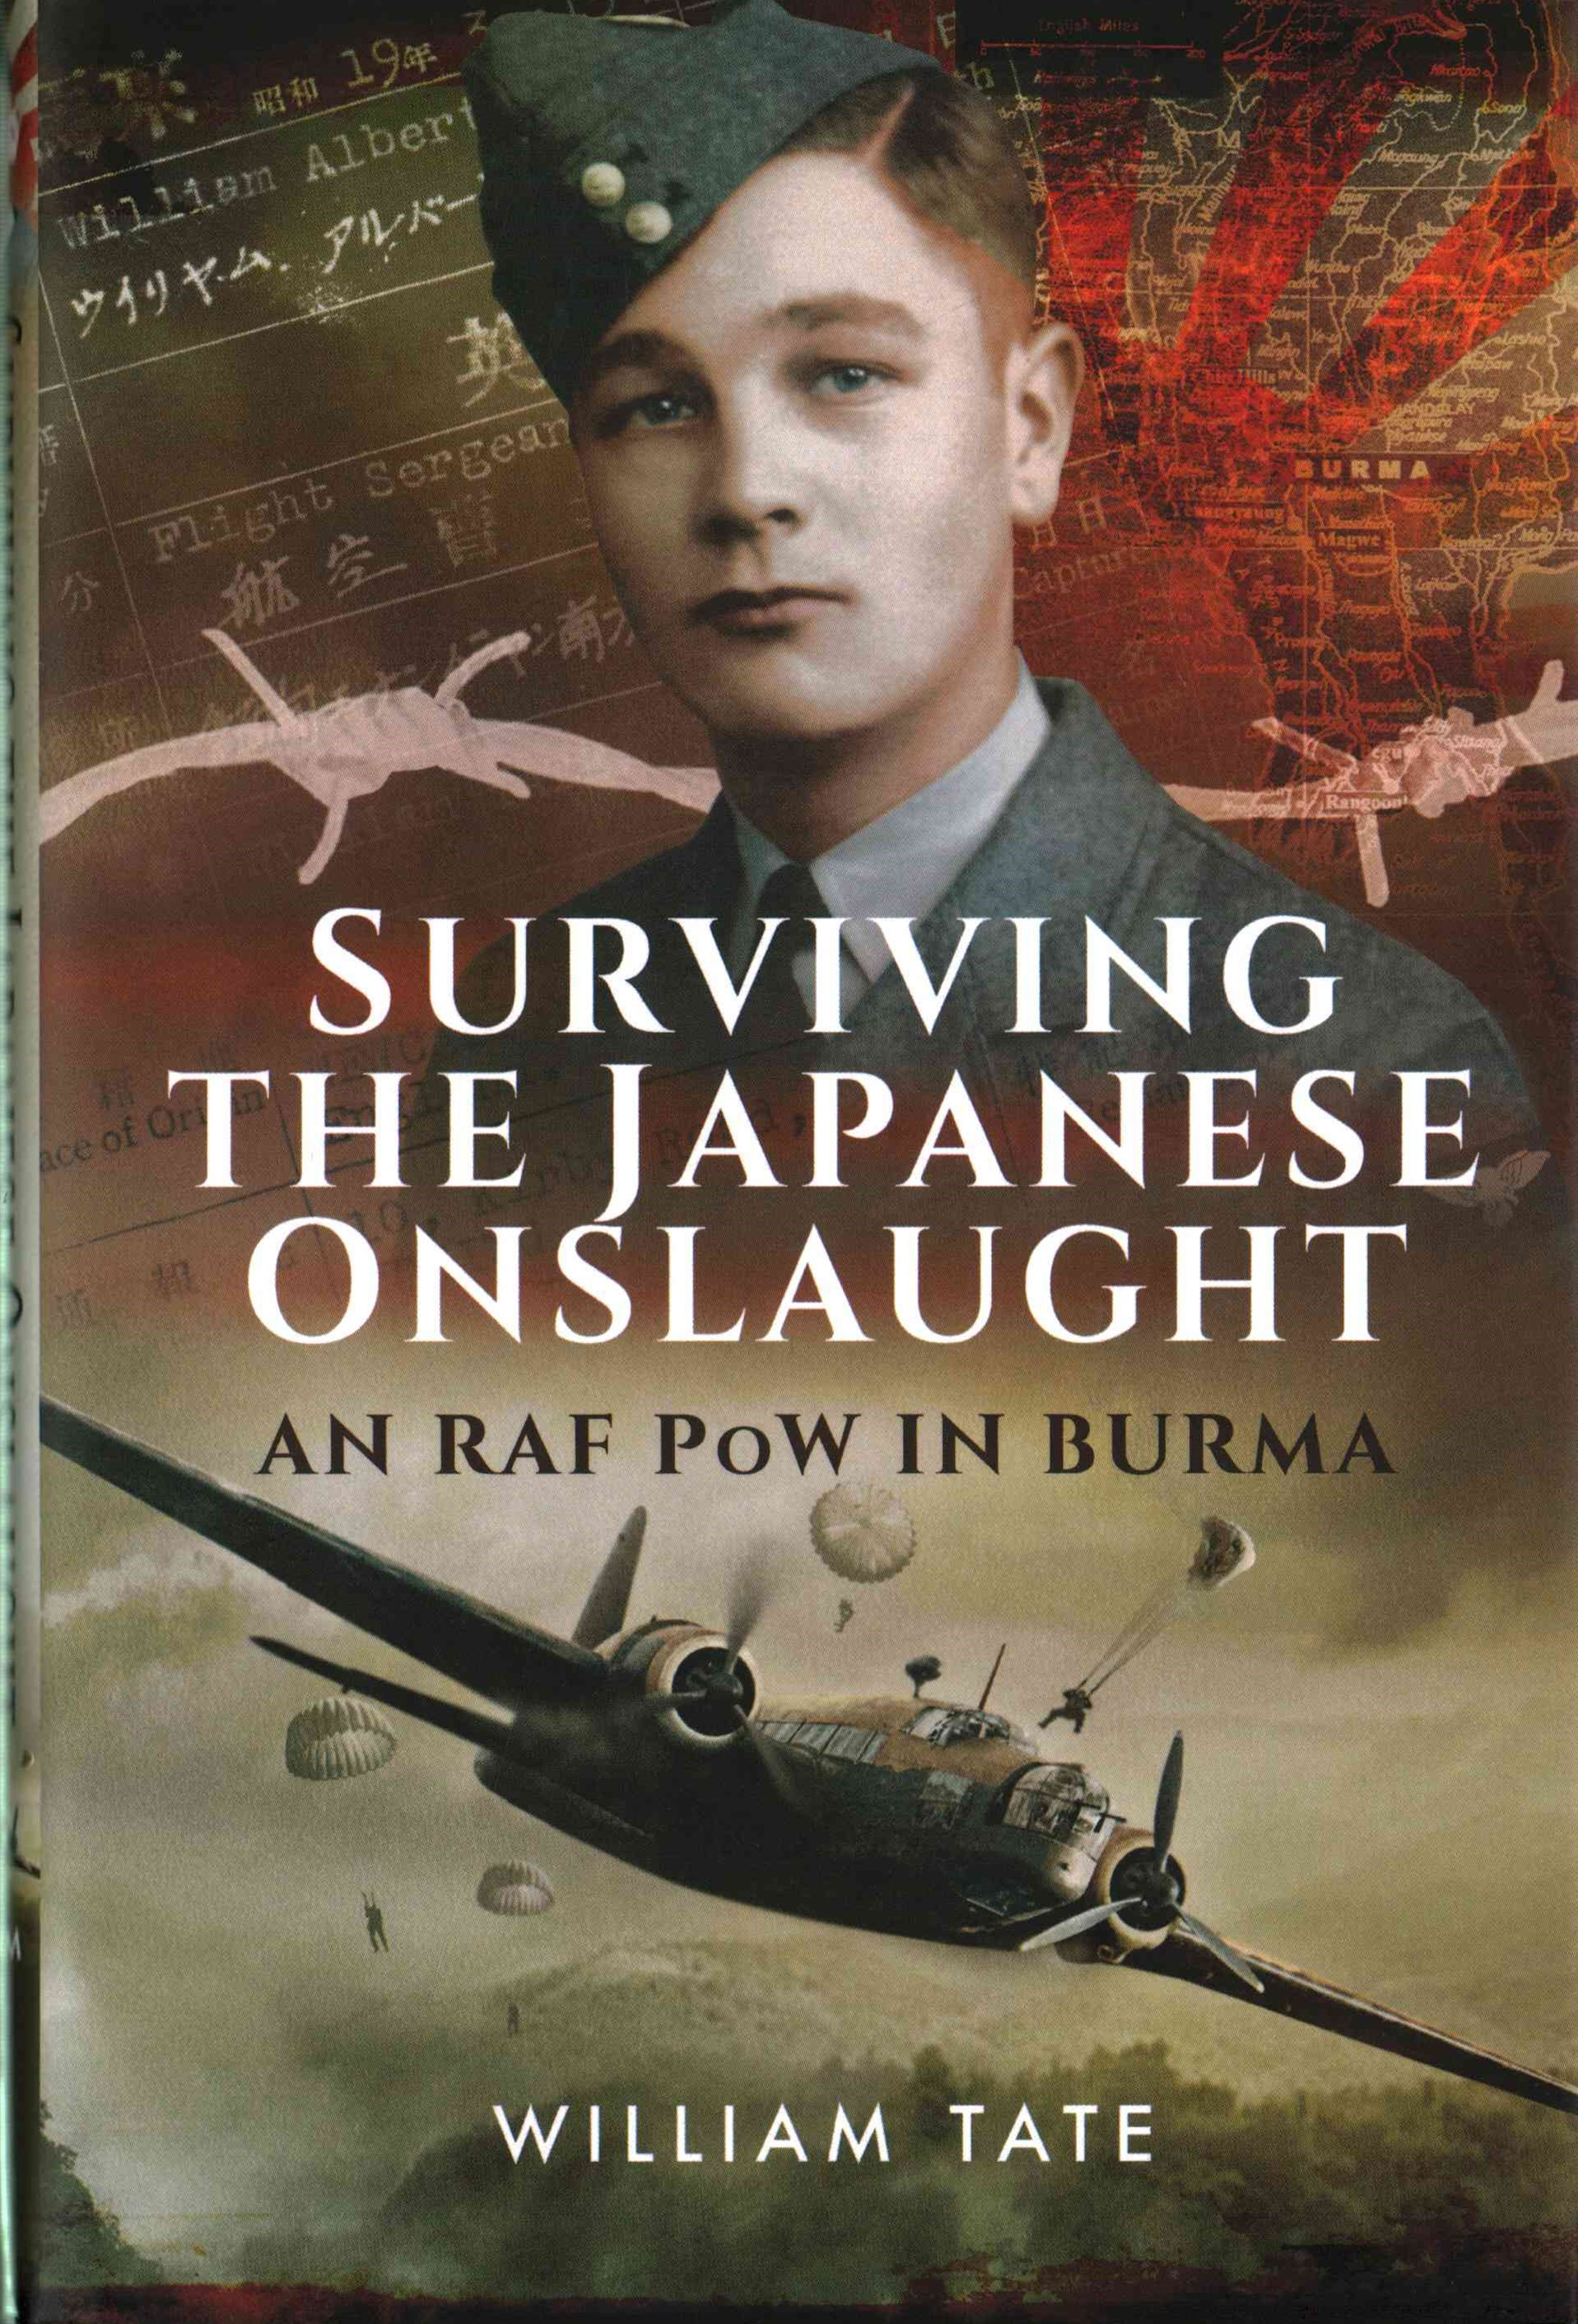 Surviving the Japanese Onslaught: An RAF POW in Burma